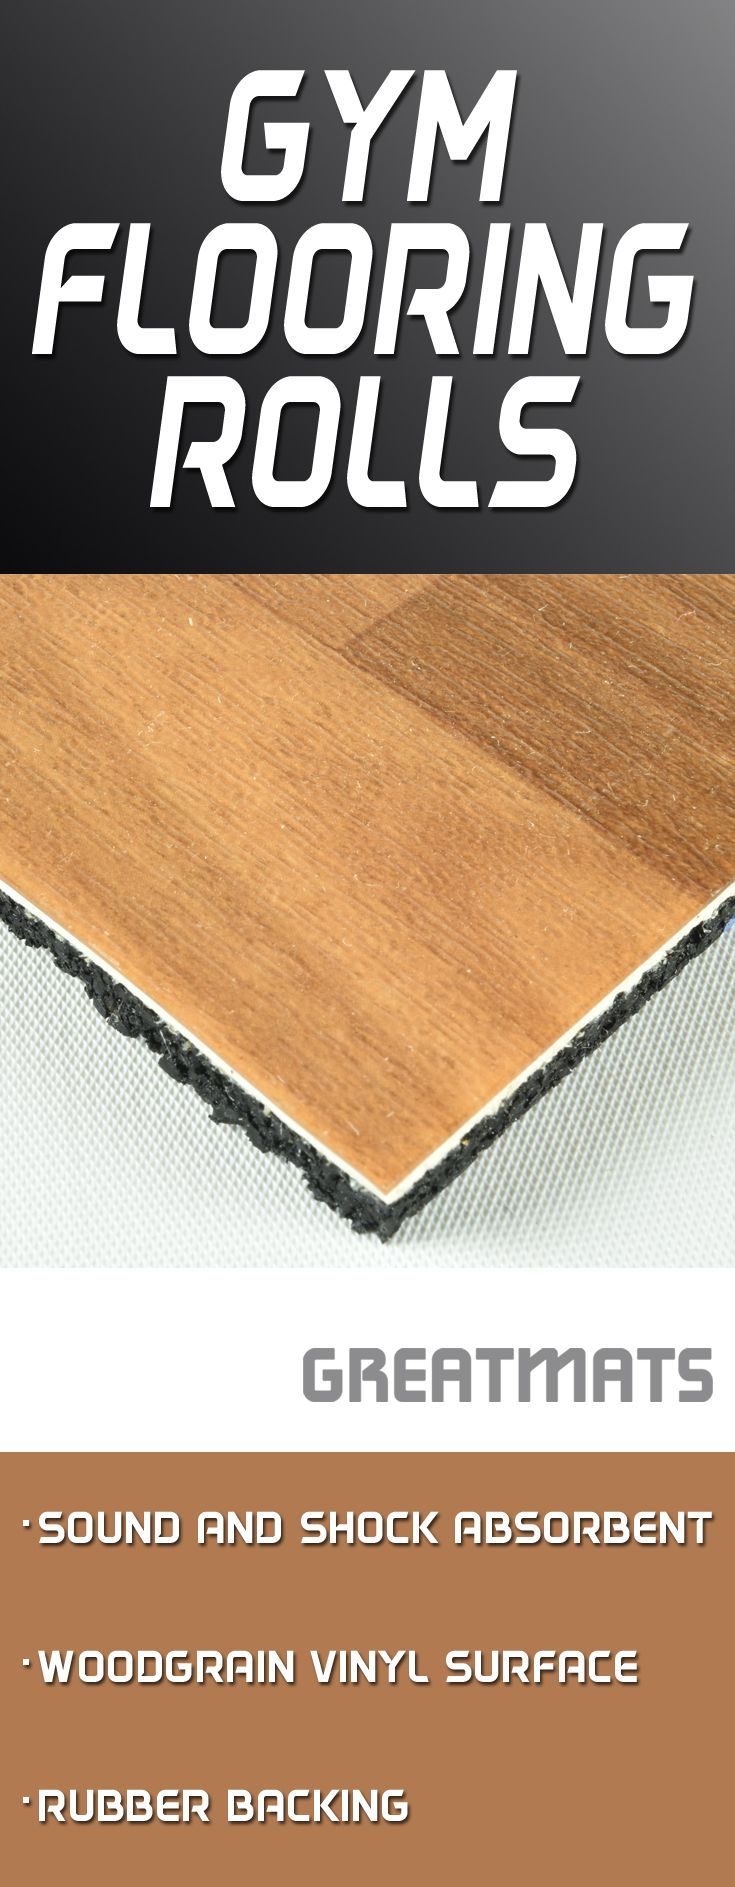 One of the most unique and style gym flooring rolls available. This floor his sound and shock absorbent and features a wood grain vinyl surface.